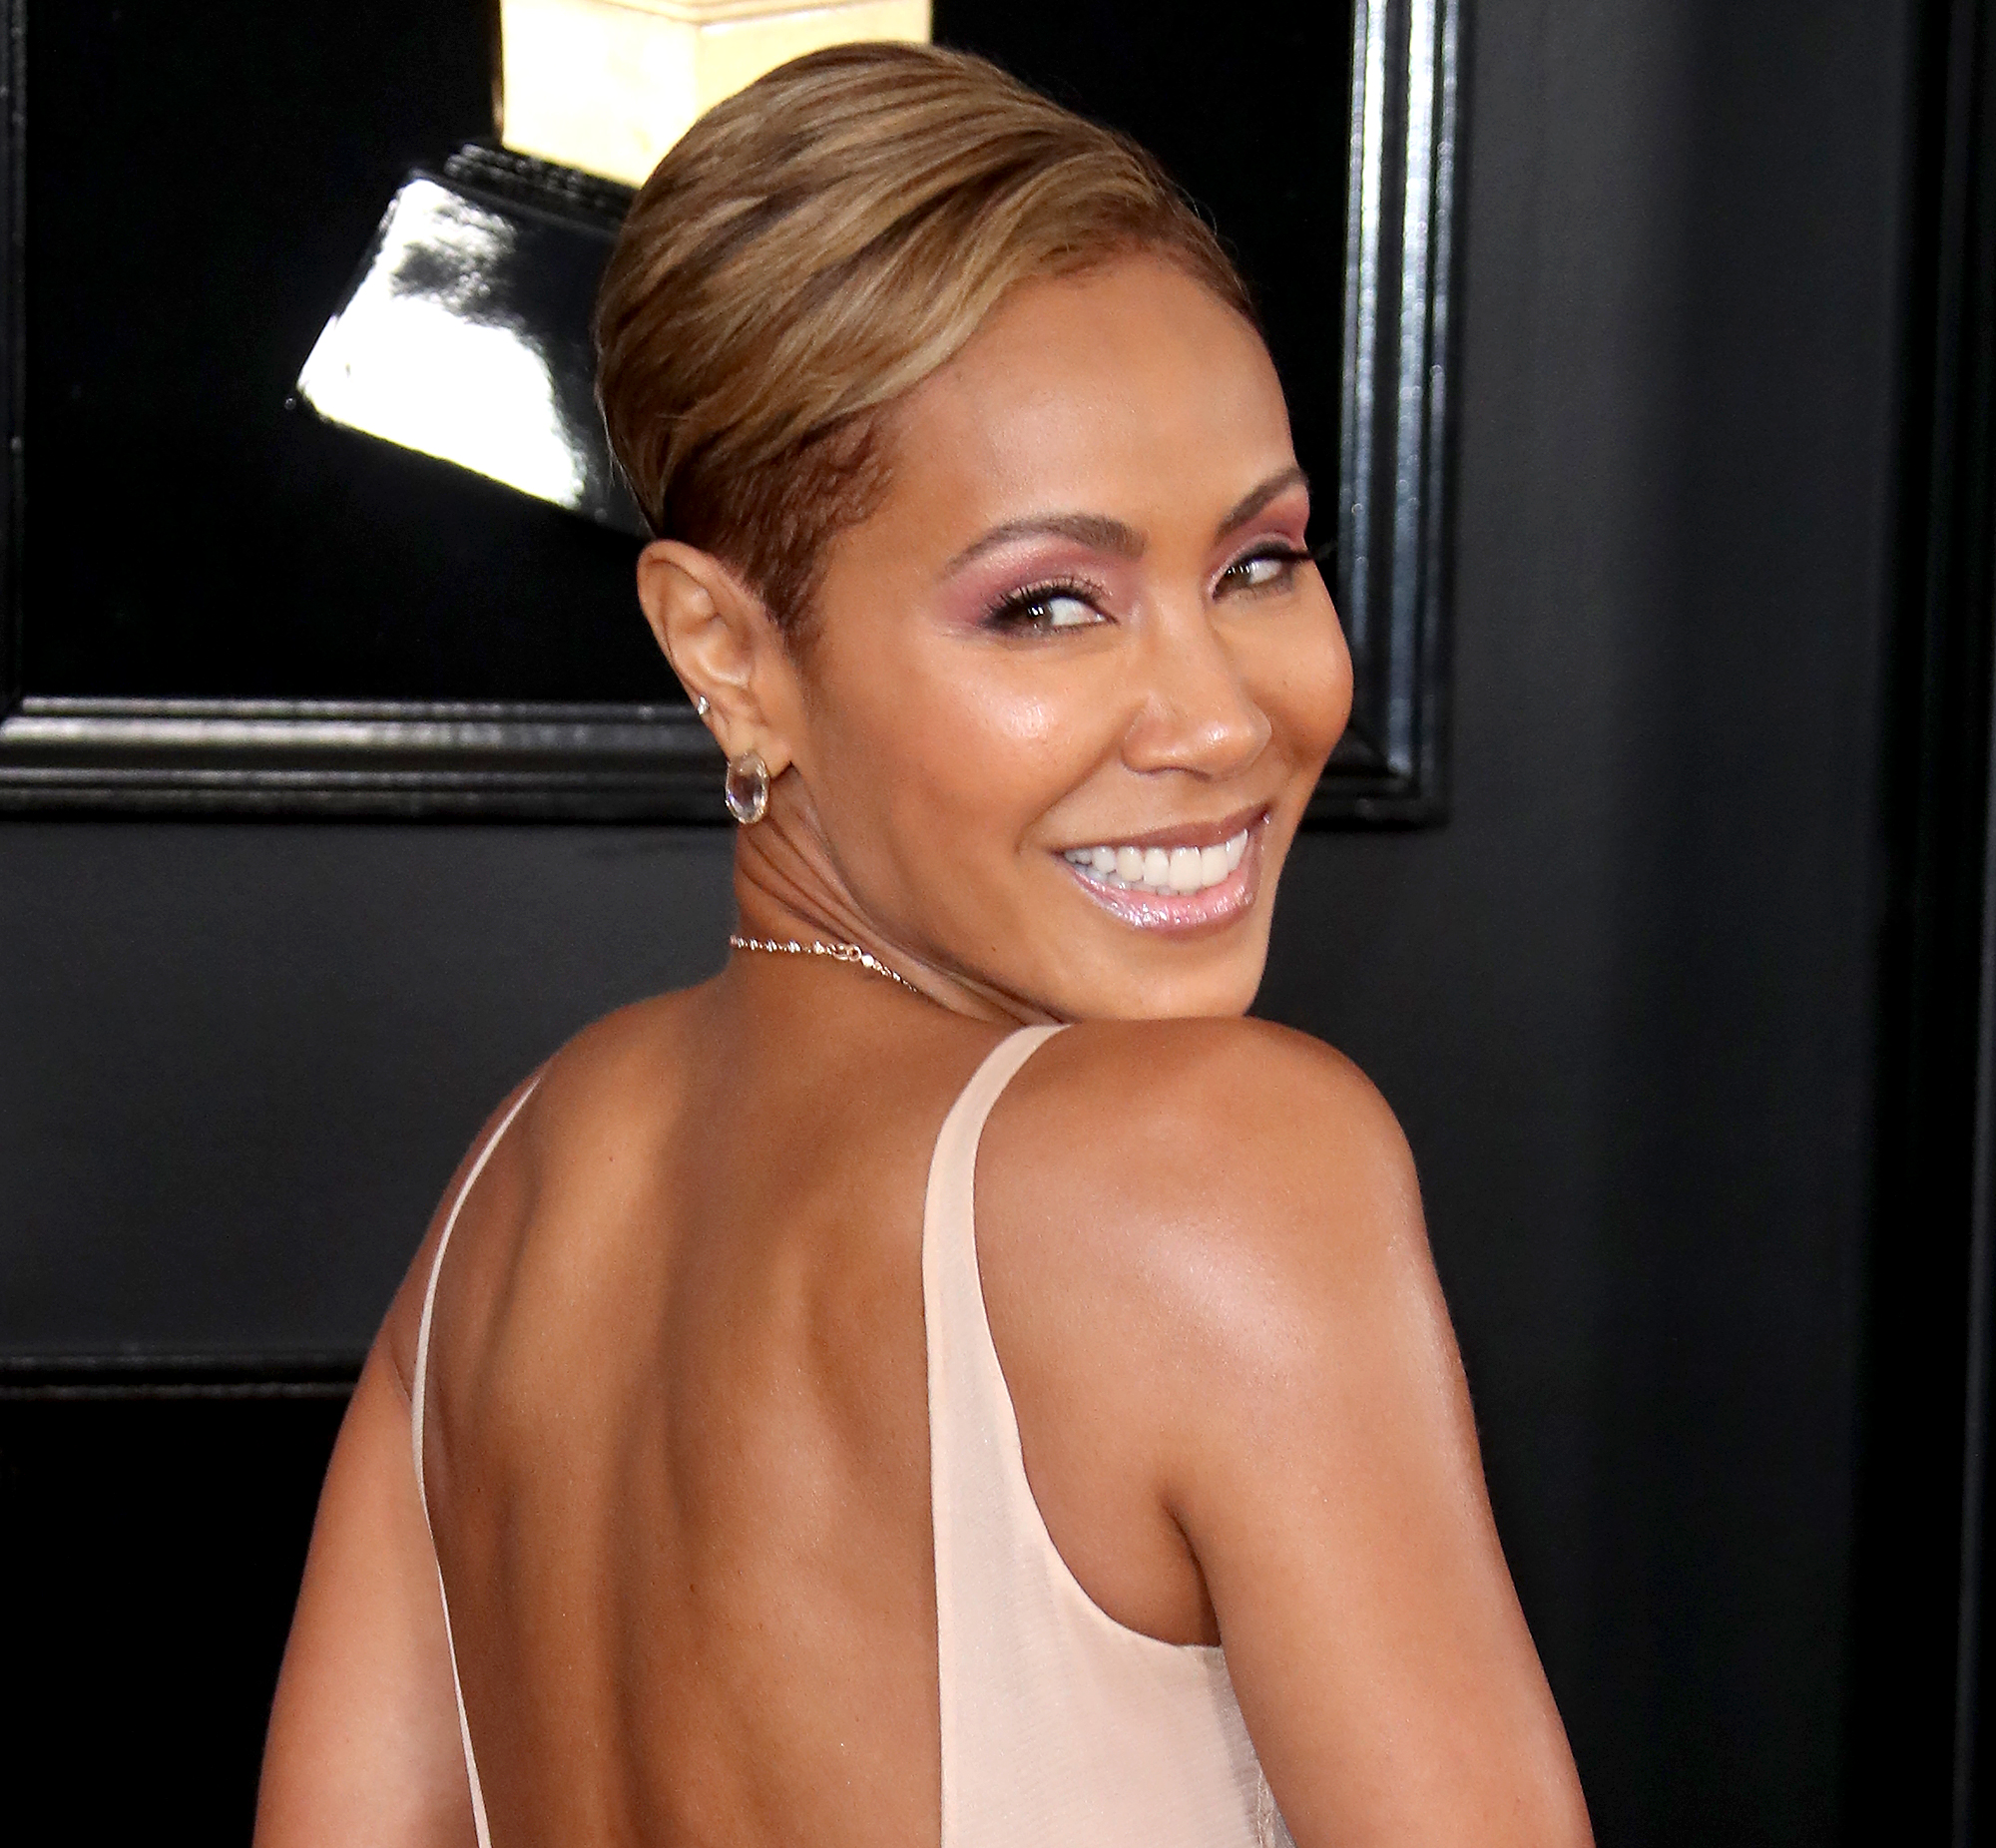 Jada-Pinkett-Smith-talks-porn-addiction